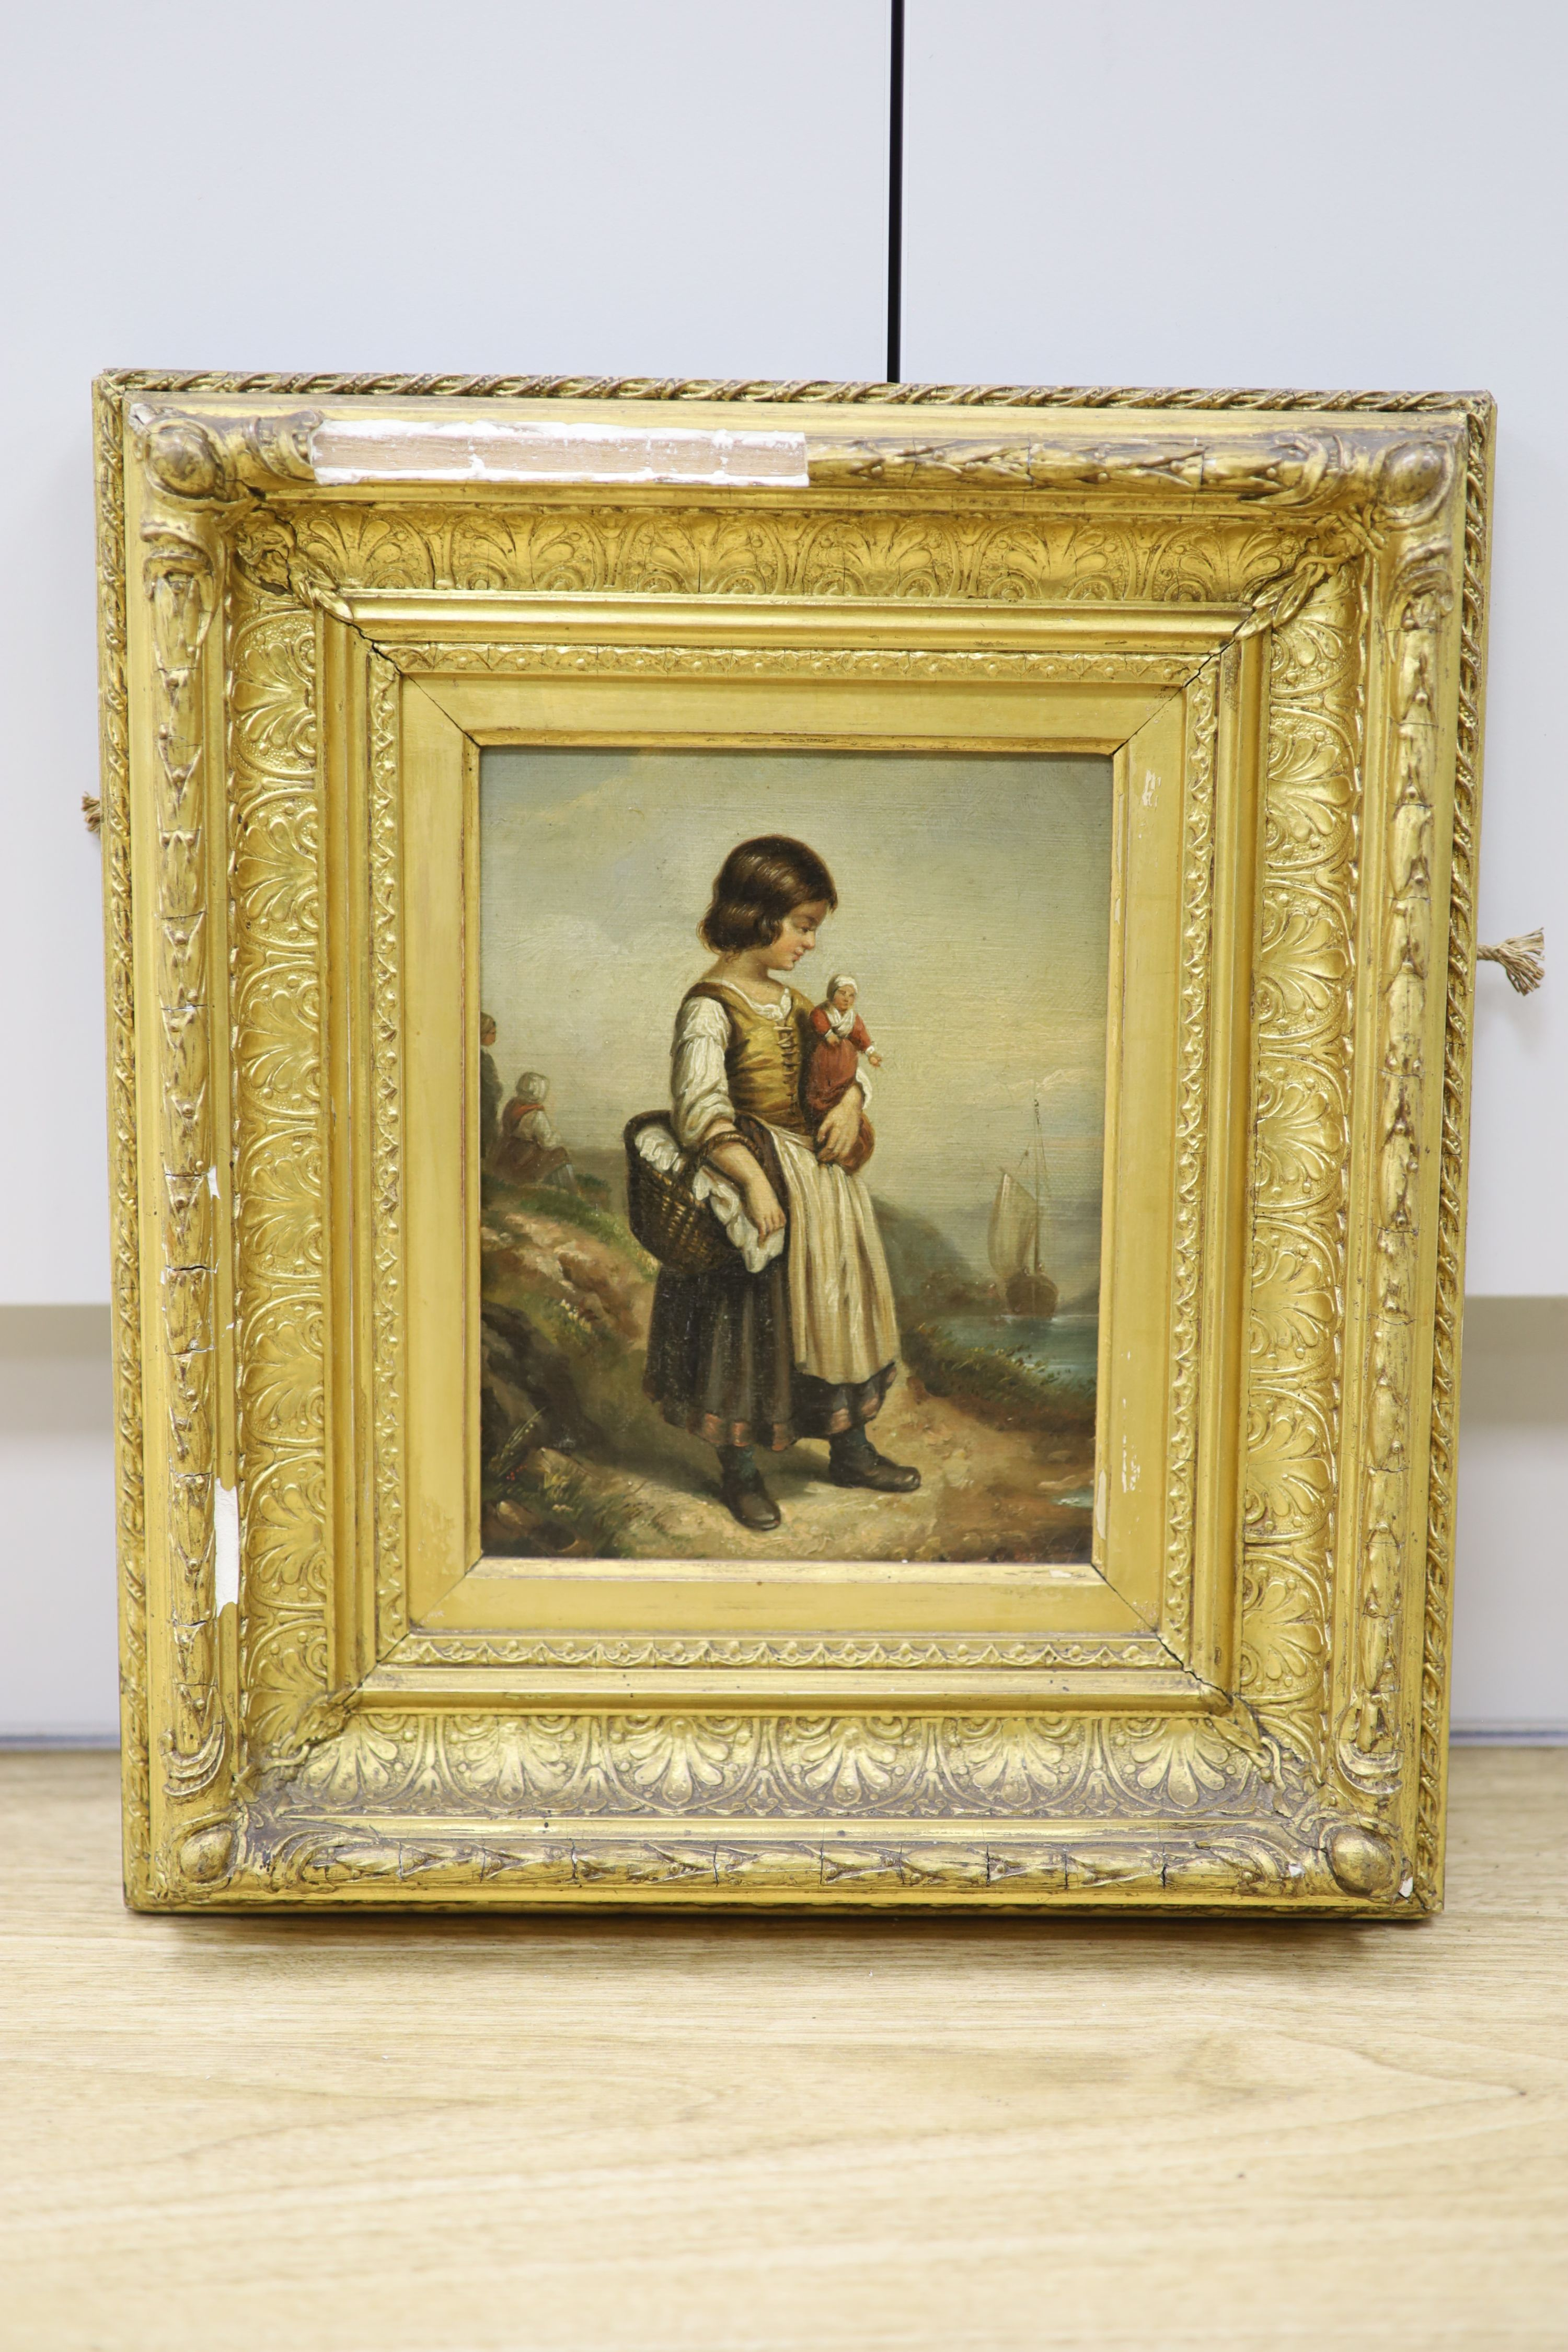 19th century French School, oil on canvas, Girl holding a doll standing upon the seashore, 21 x - Image 2 of 2